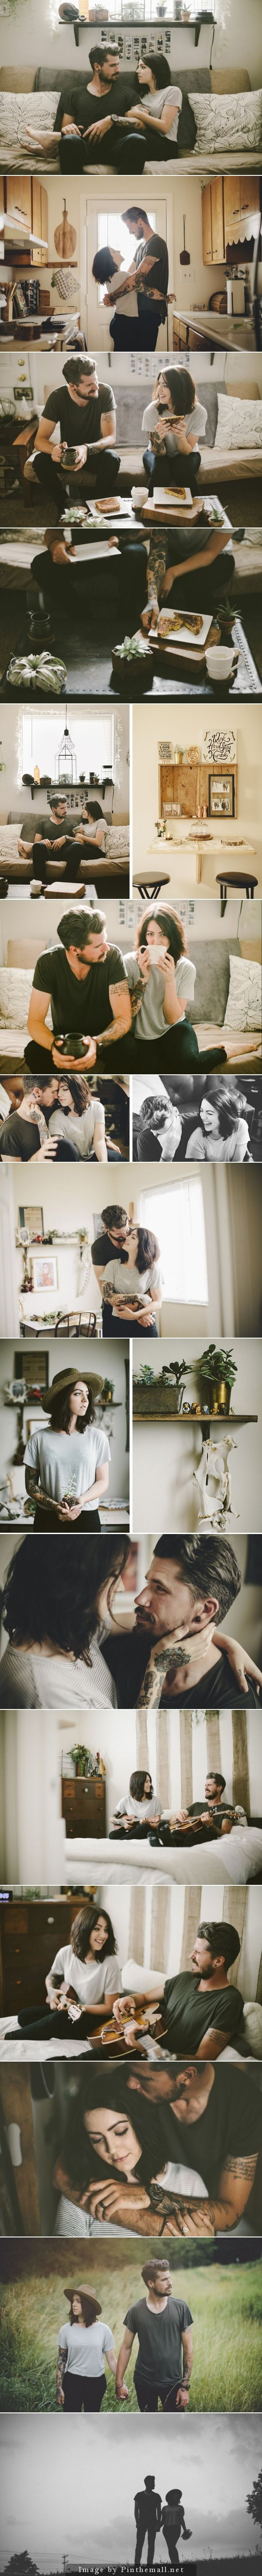 Personal couples photos in their home //